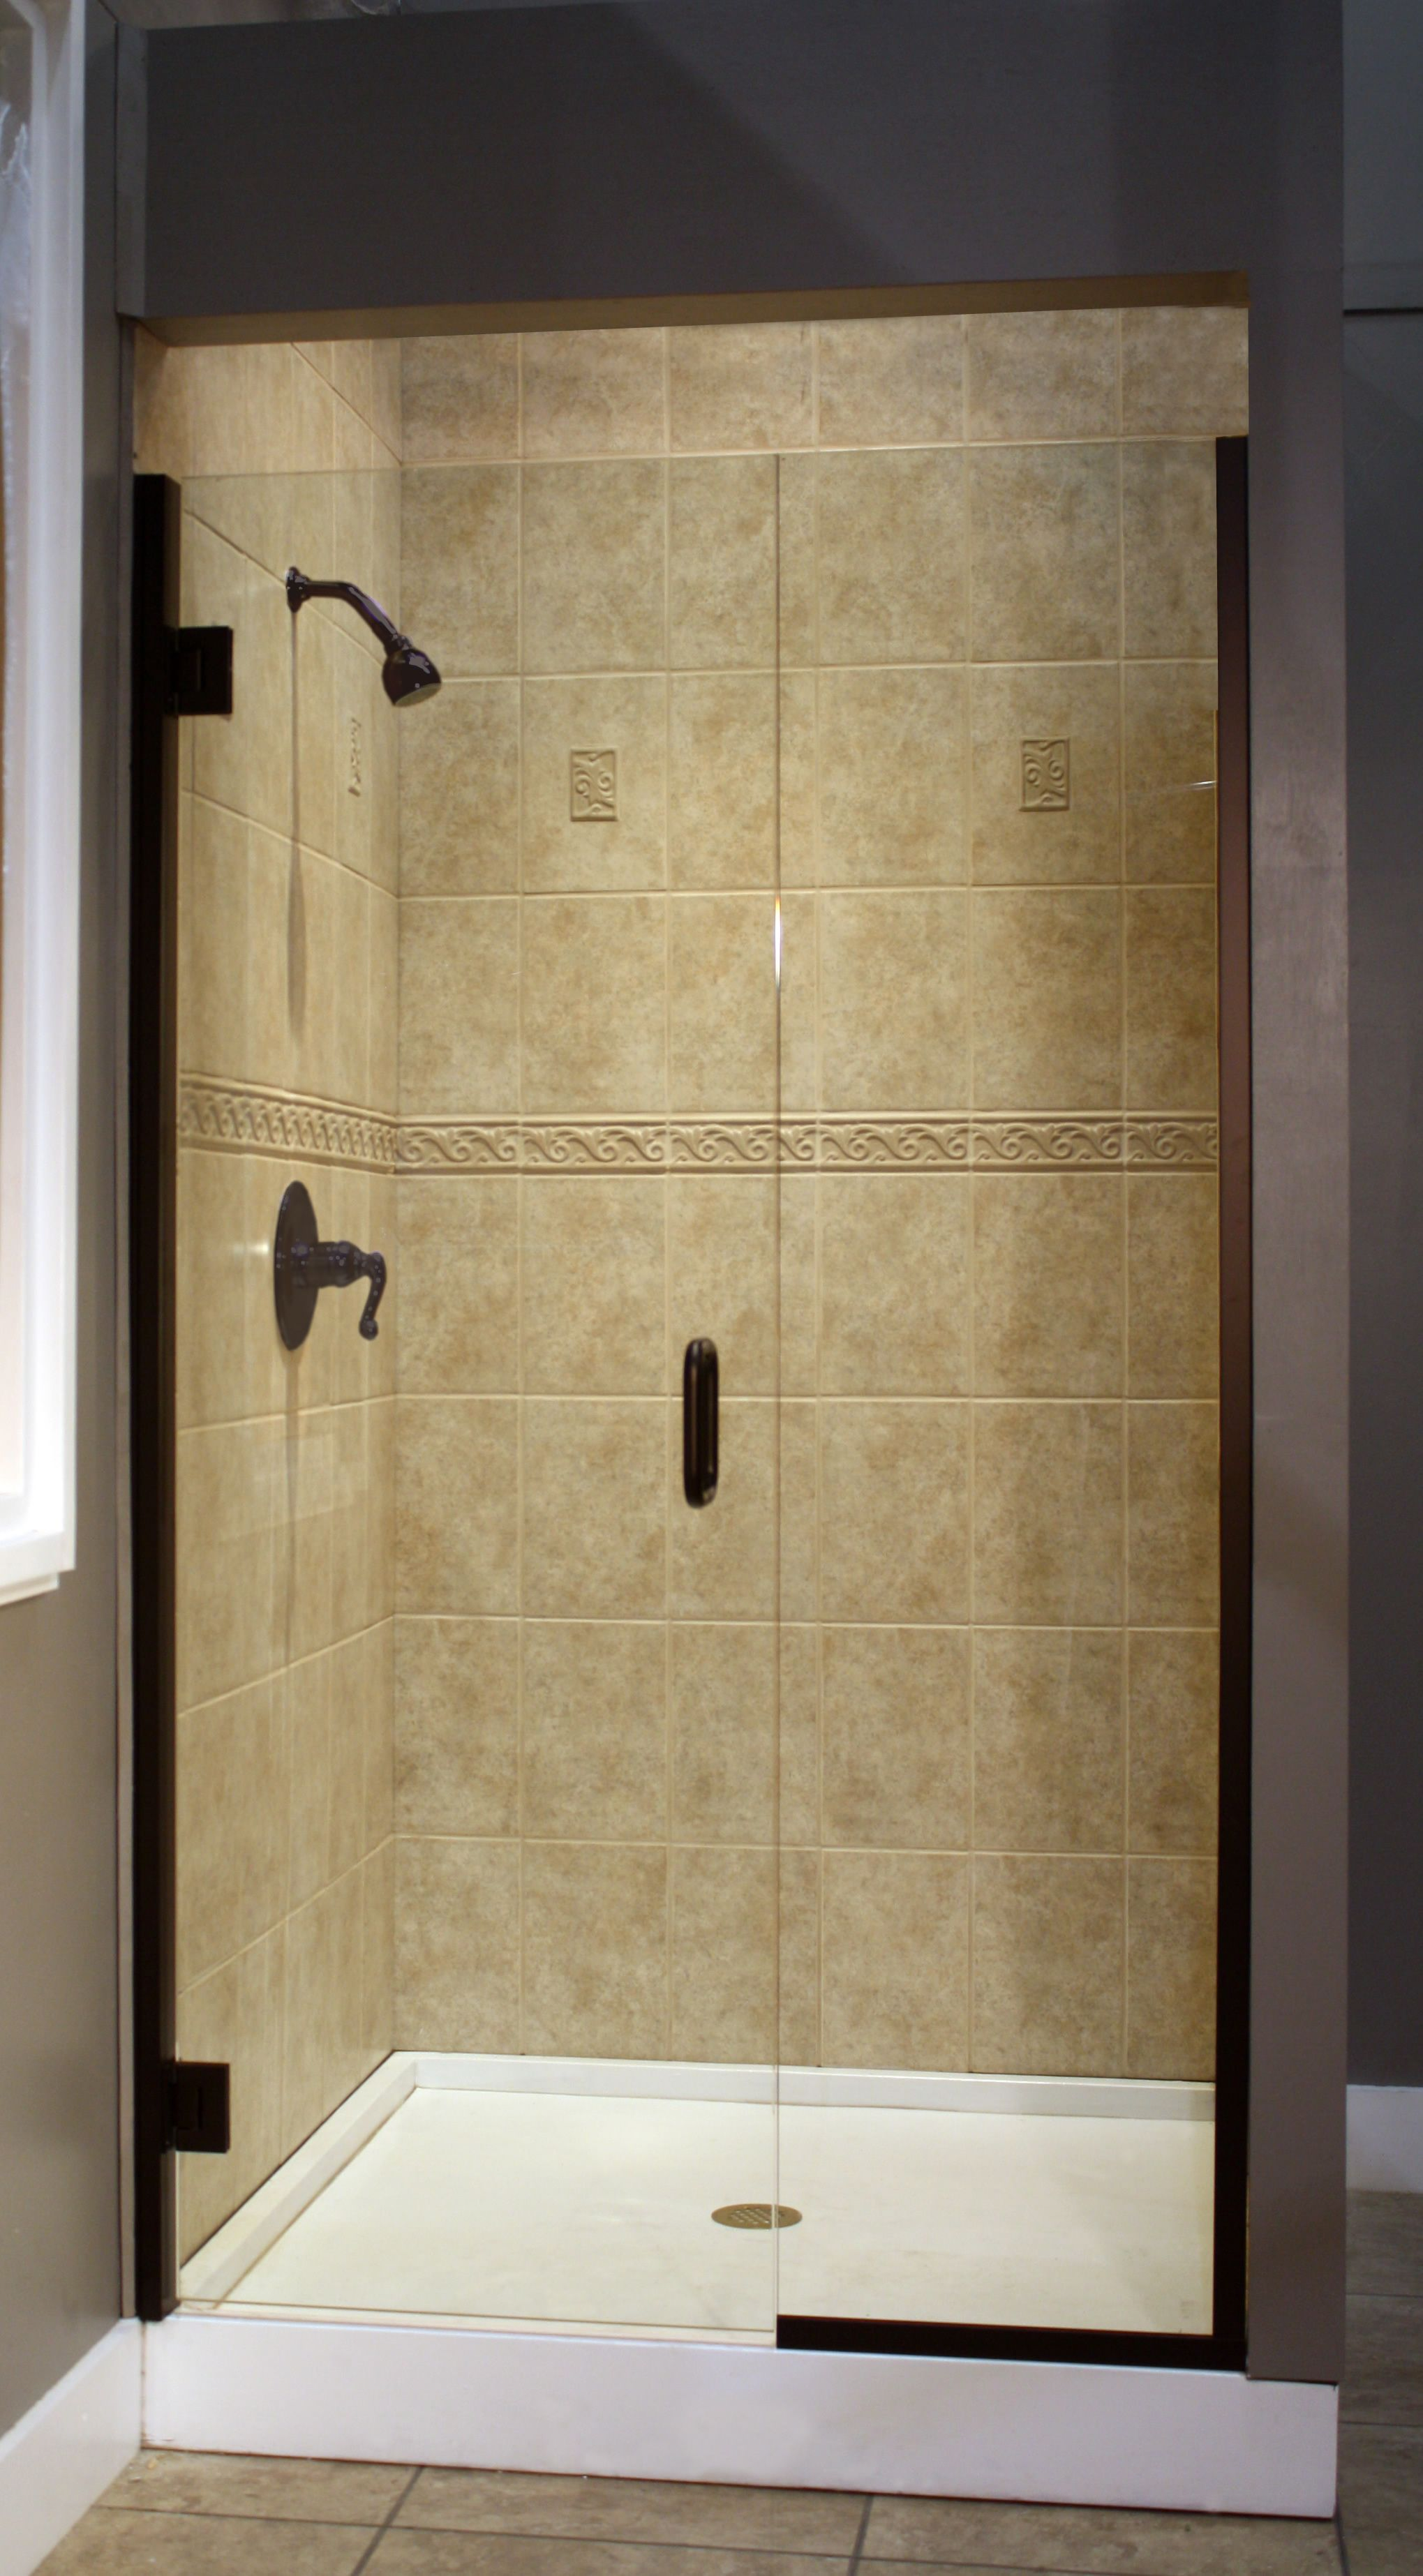 Bathroom Elegant Euro Frameless Shower Door Cost Per Square Foot With Metal And Glass Materials Design And This Also The Most Expensive In Both Mater Bercahaya